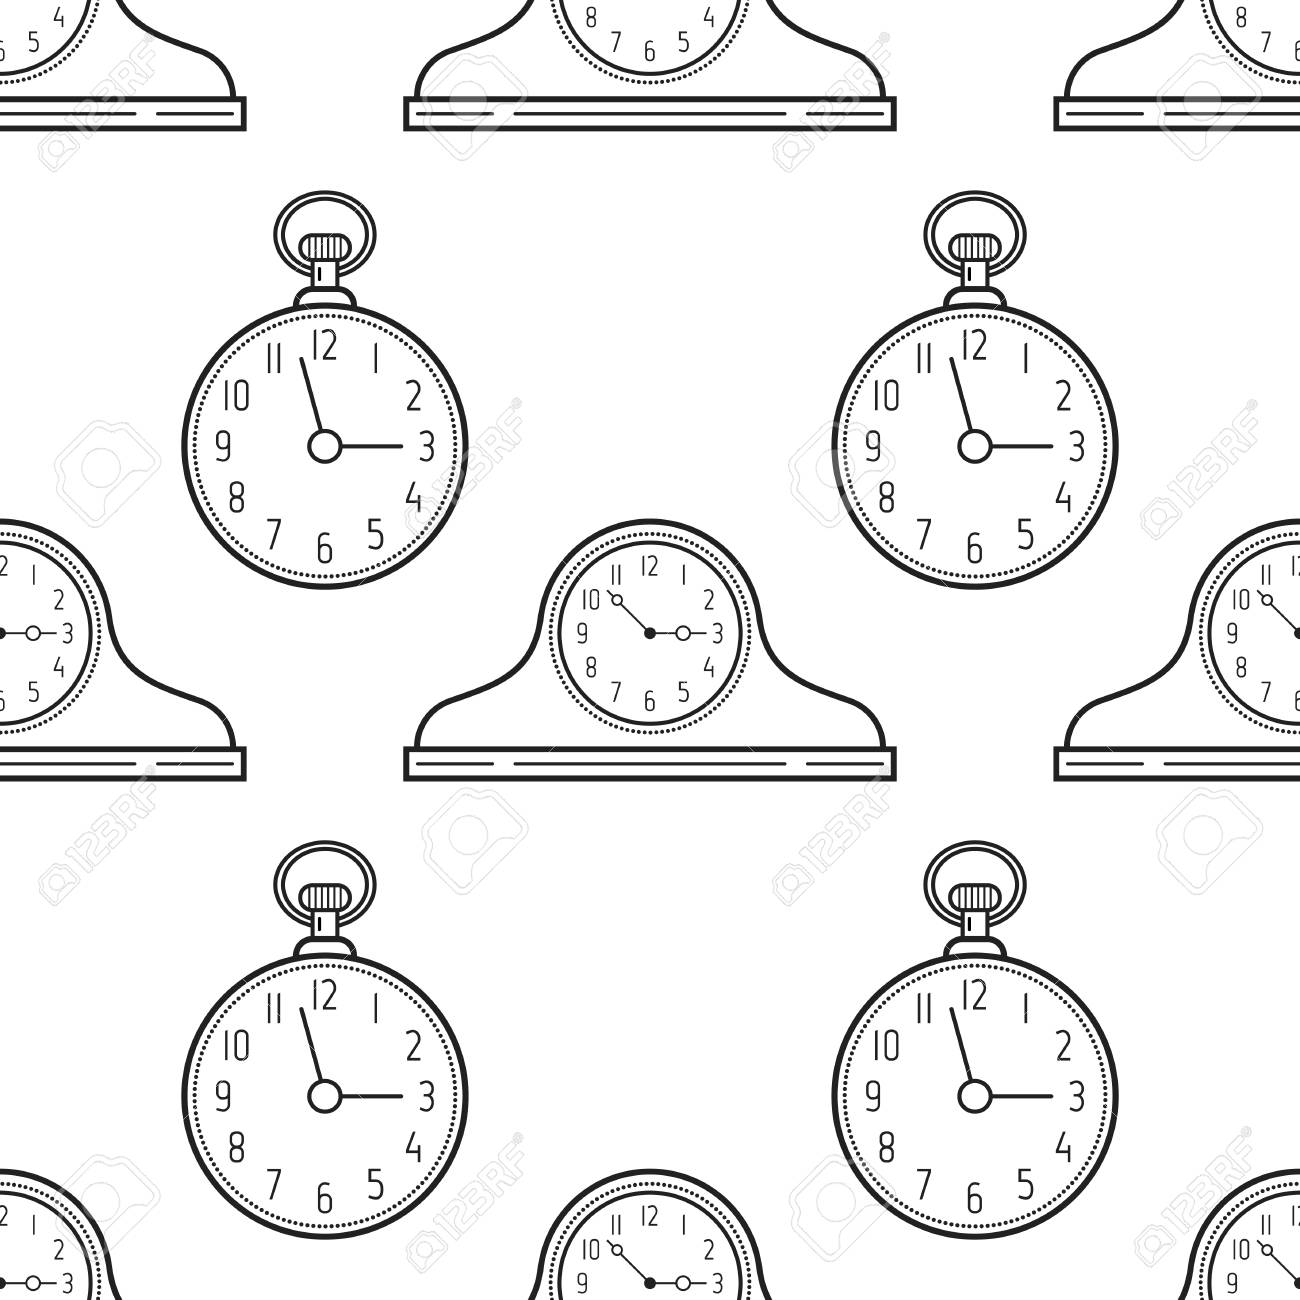 clocks watchBlack white and Mantel and seamless pattern pocket srdCthQ